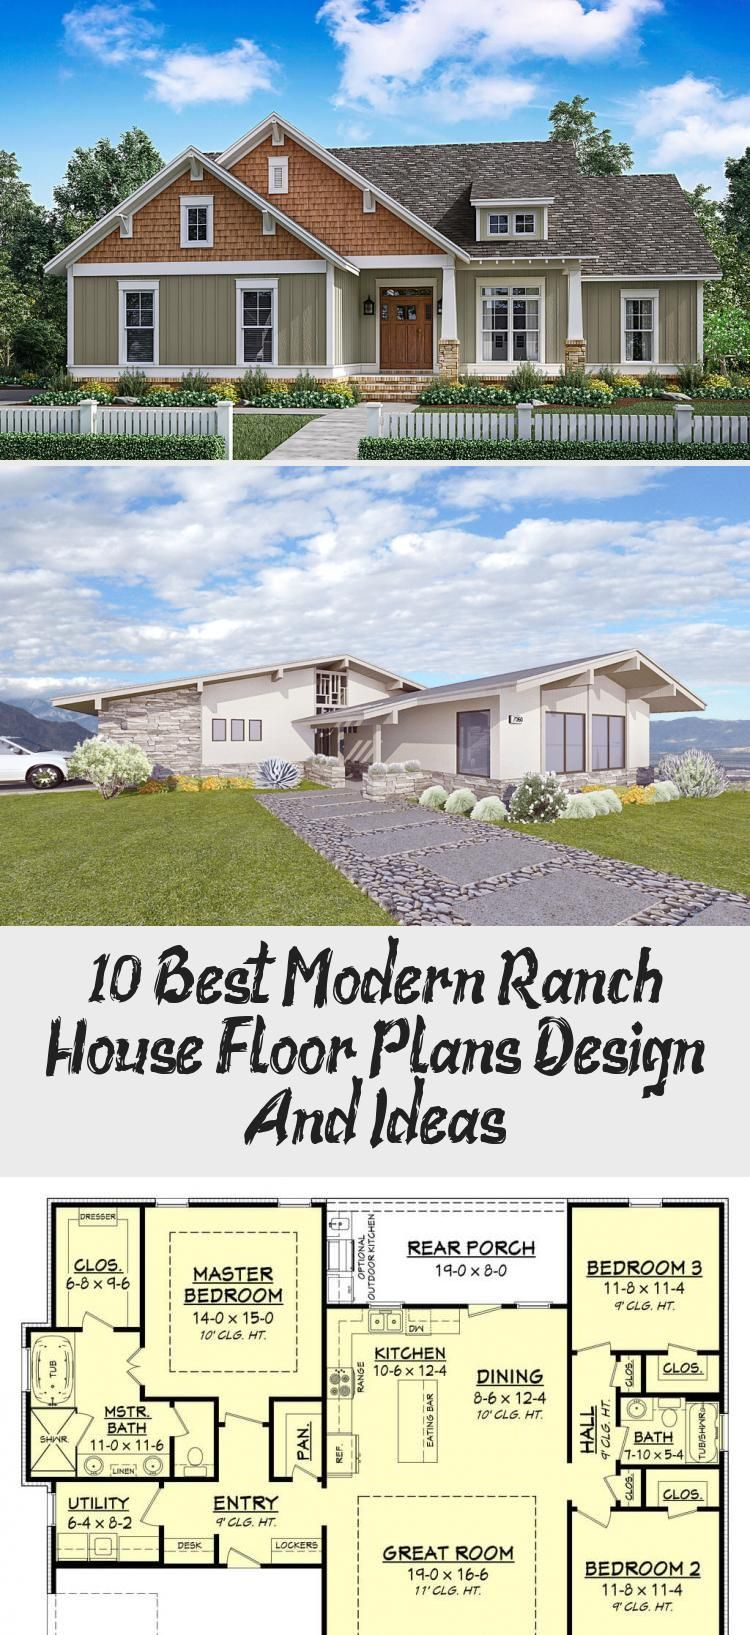 Looking For Ranch House Floor Plans House Plans I Recommend This Site Best Picture And Gallery R In 2020 Ranch House Floor Plans House Flooring House Floor Plans